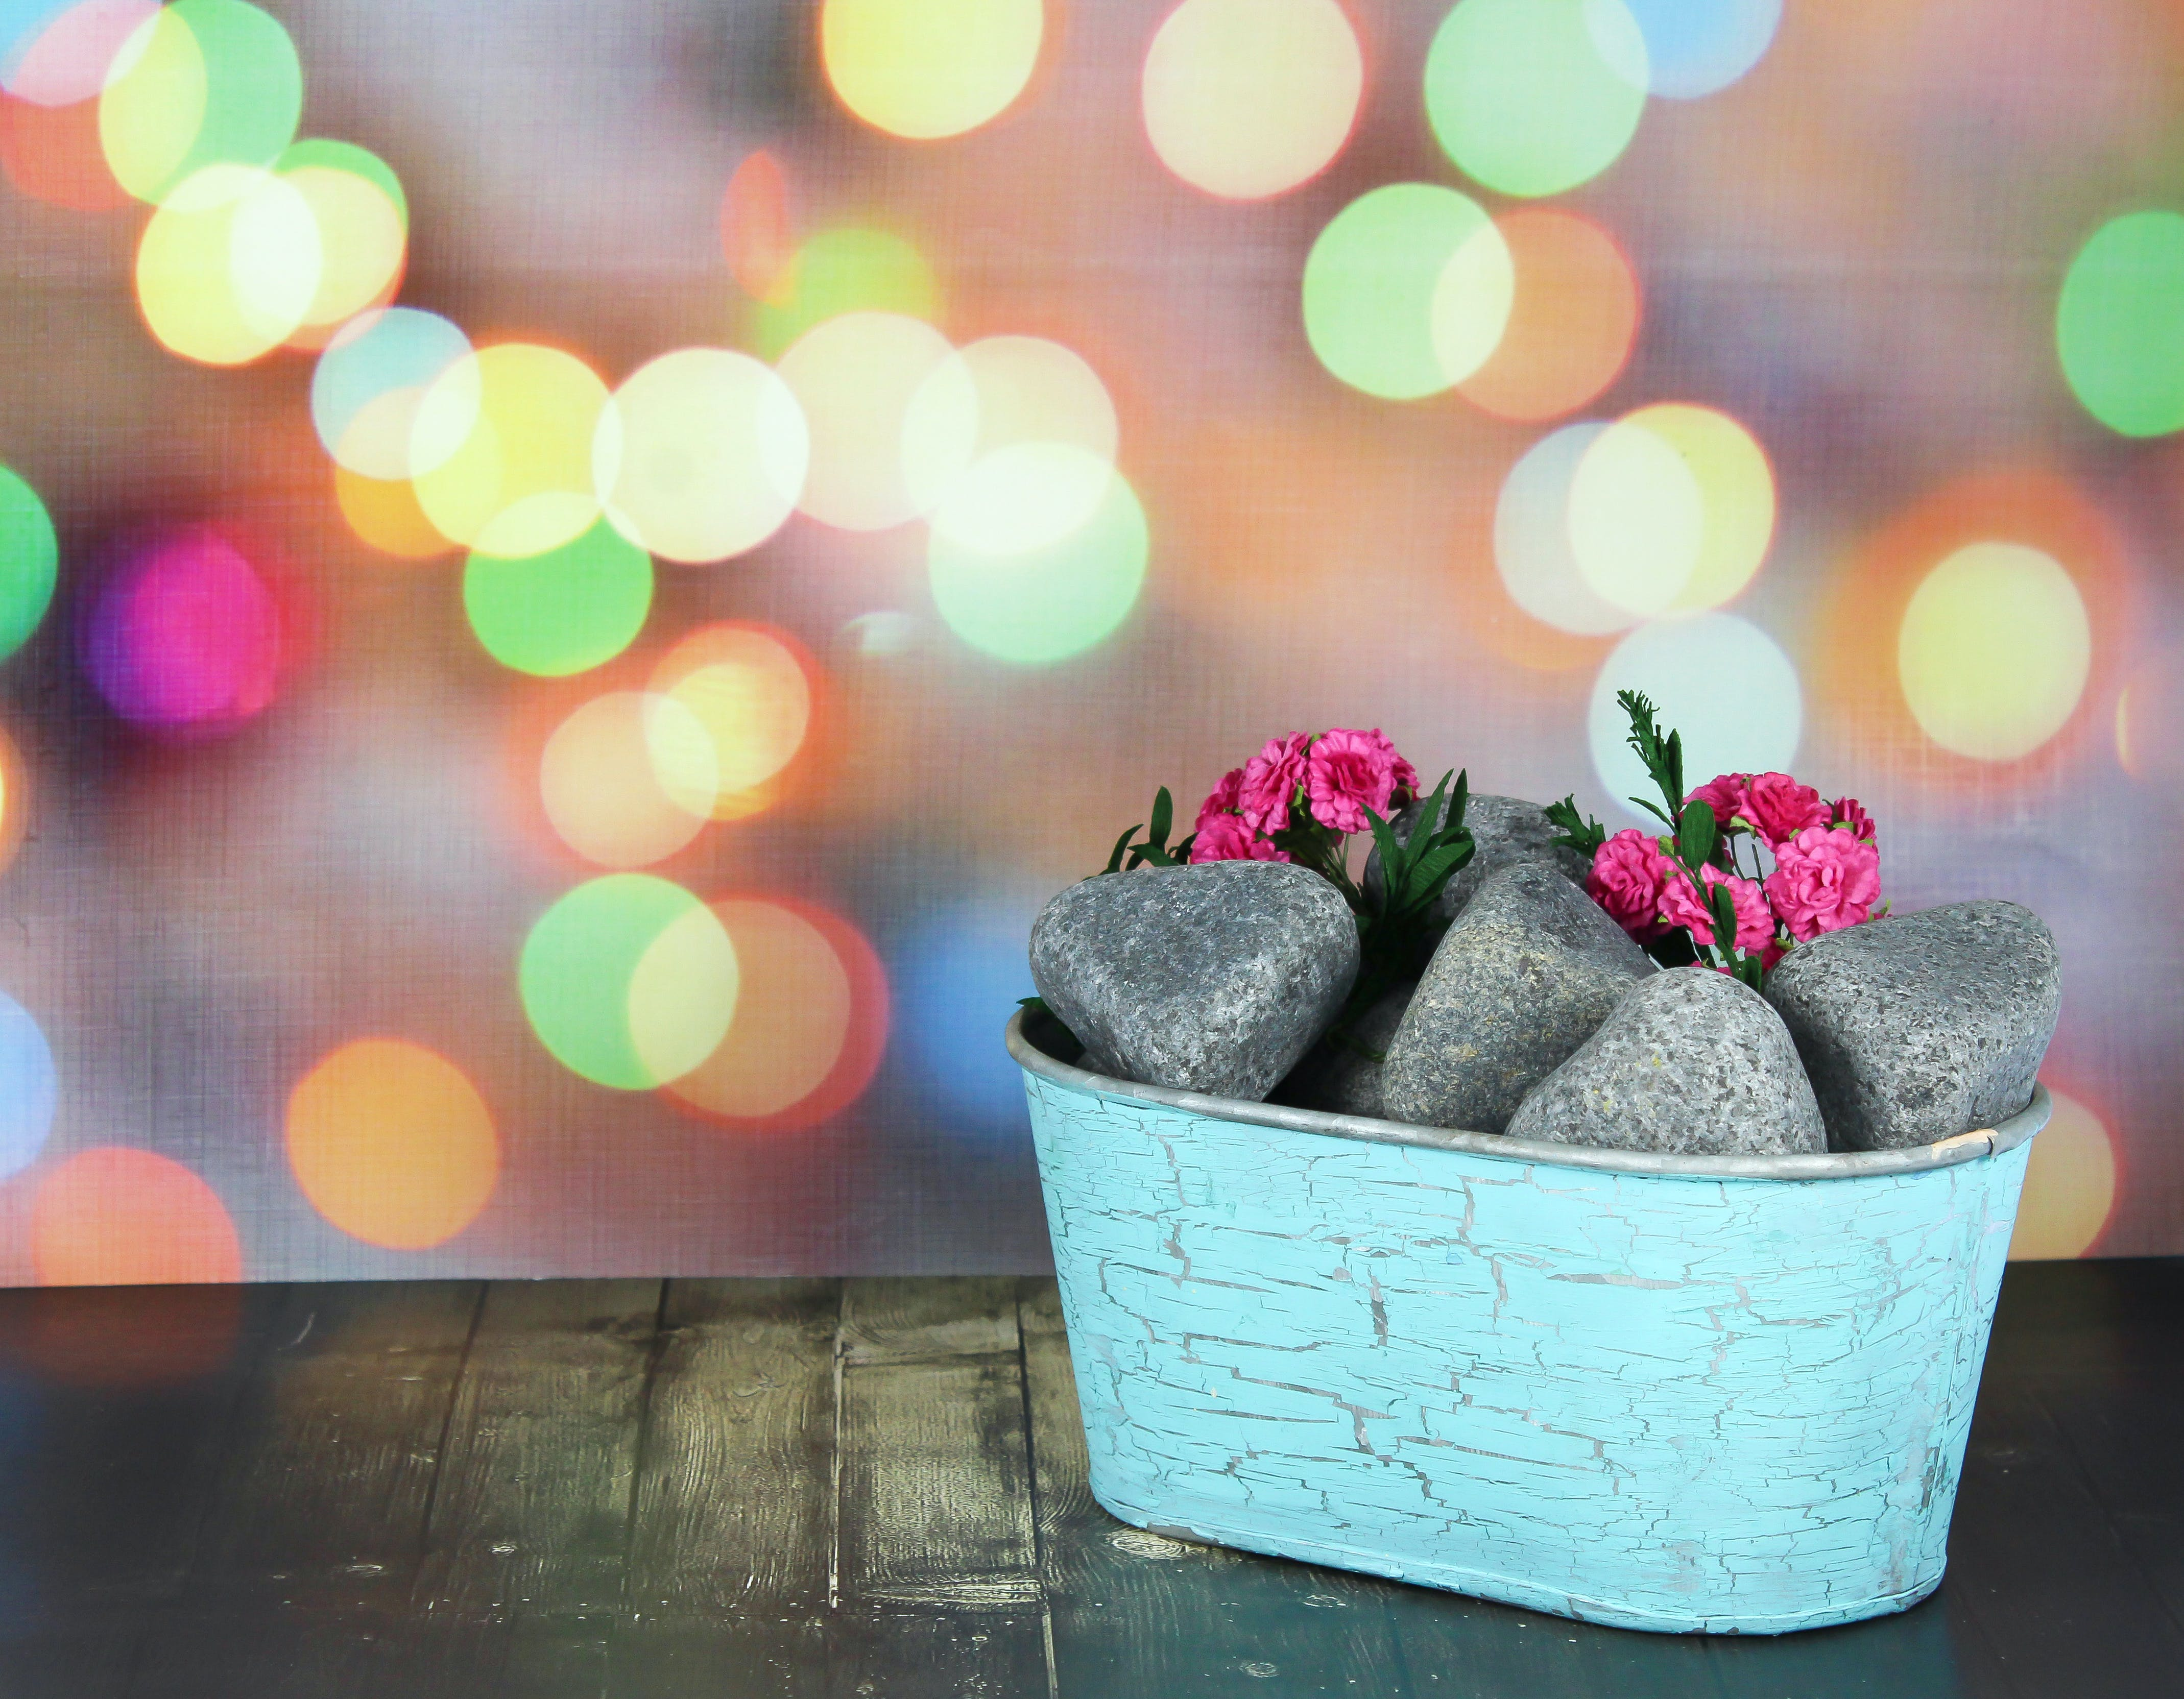 Free stock photo of background, blurred, blurred background, bokeh